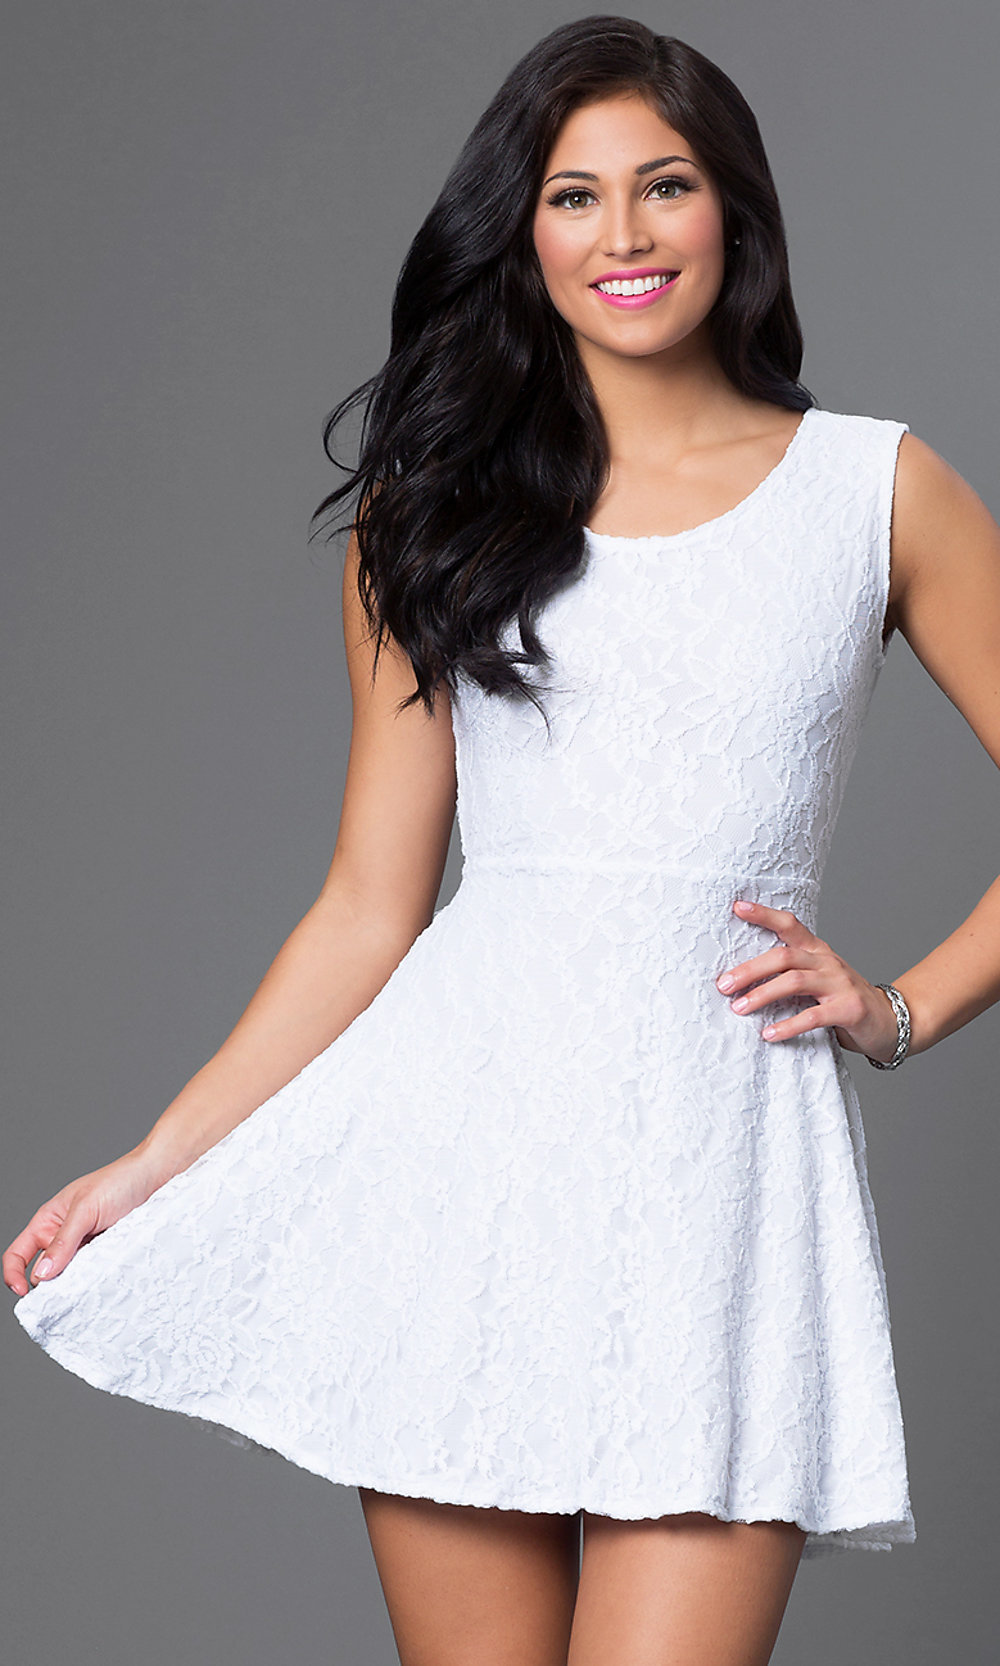 Fullsize Of Short White Dresses